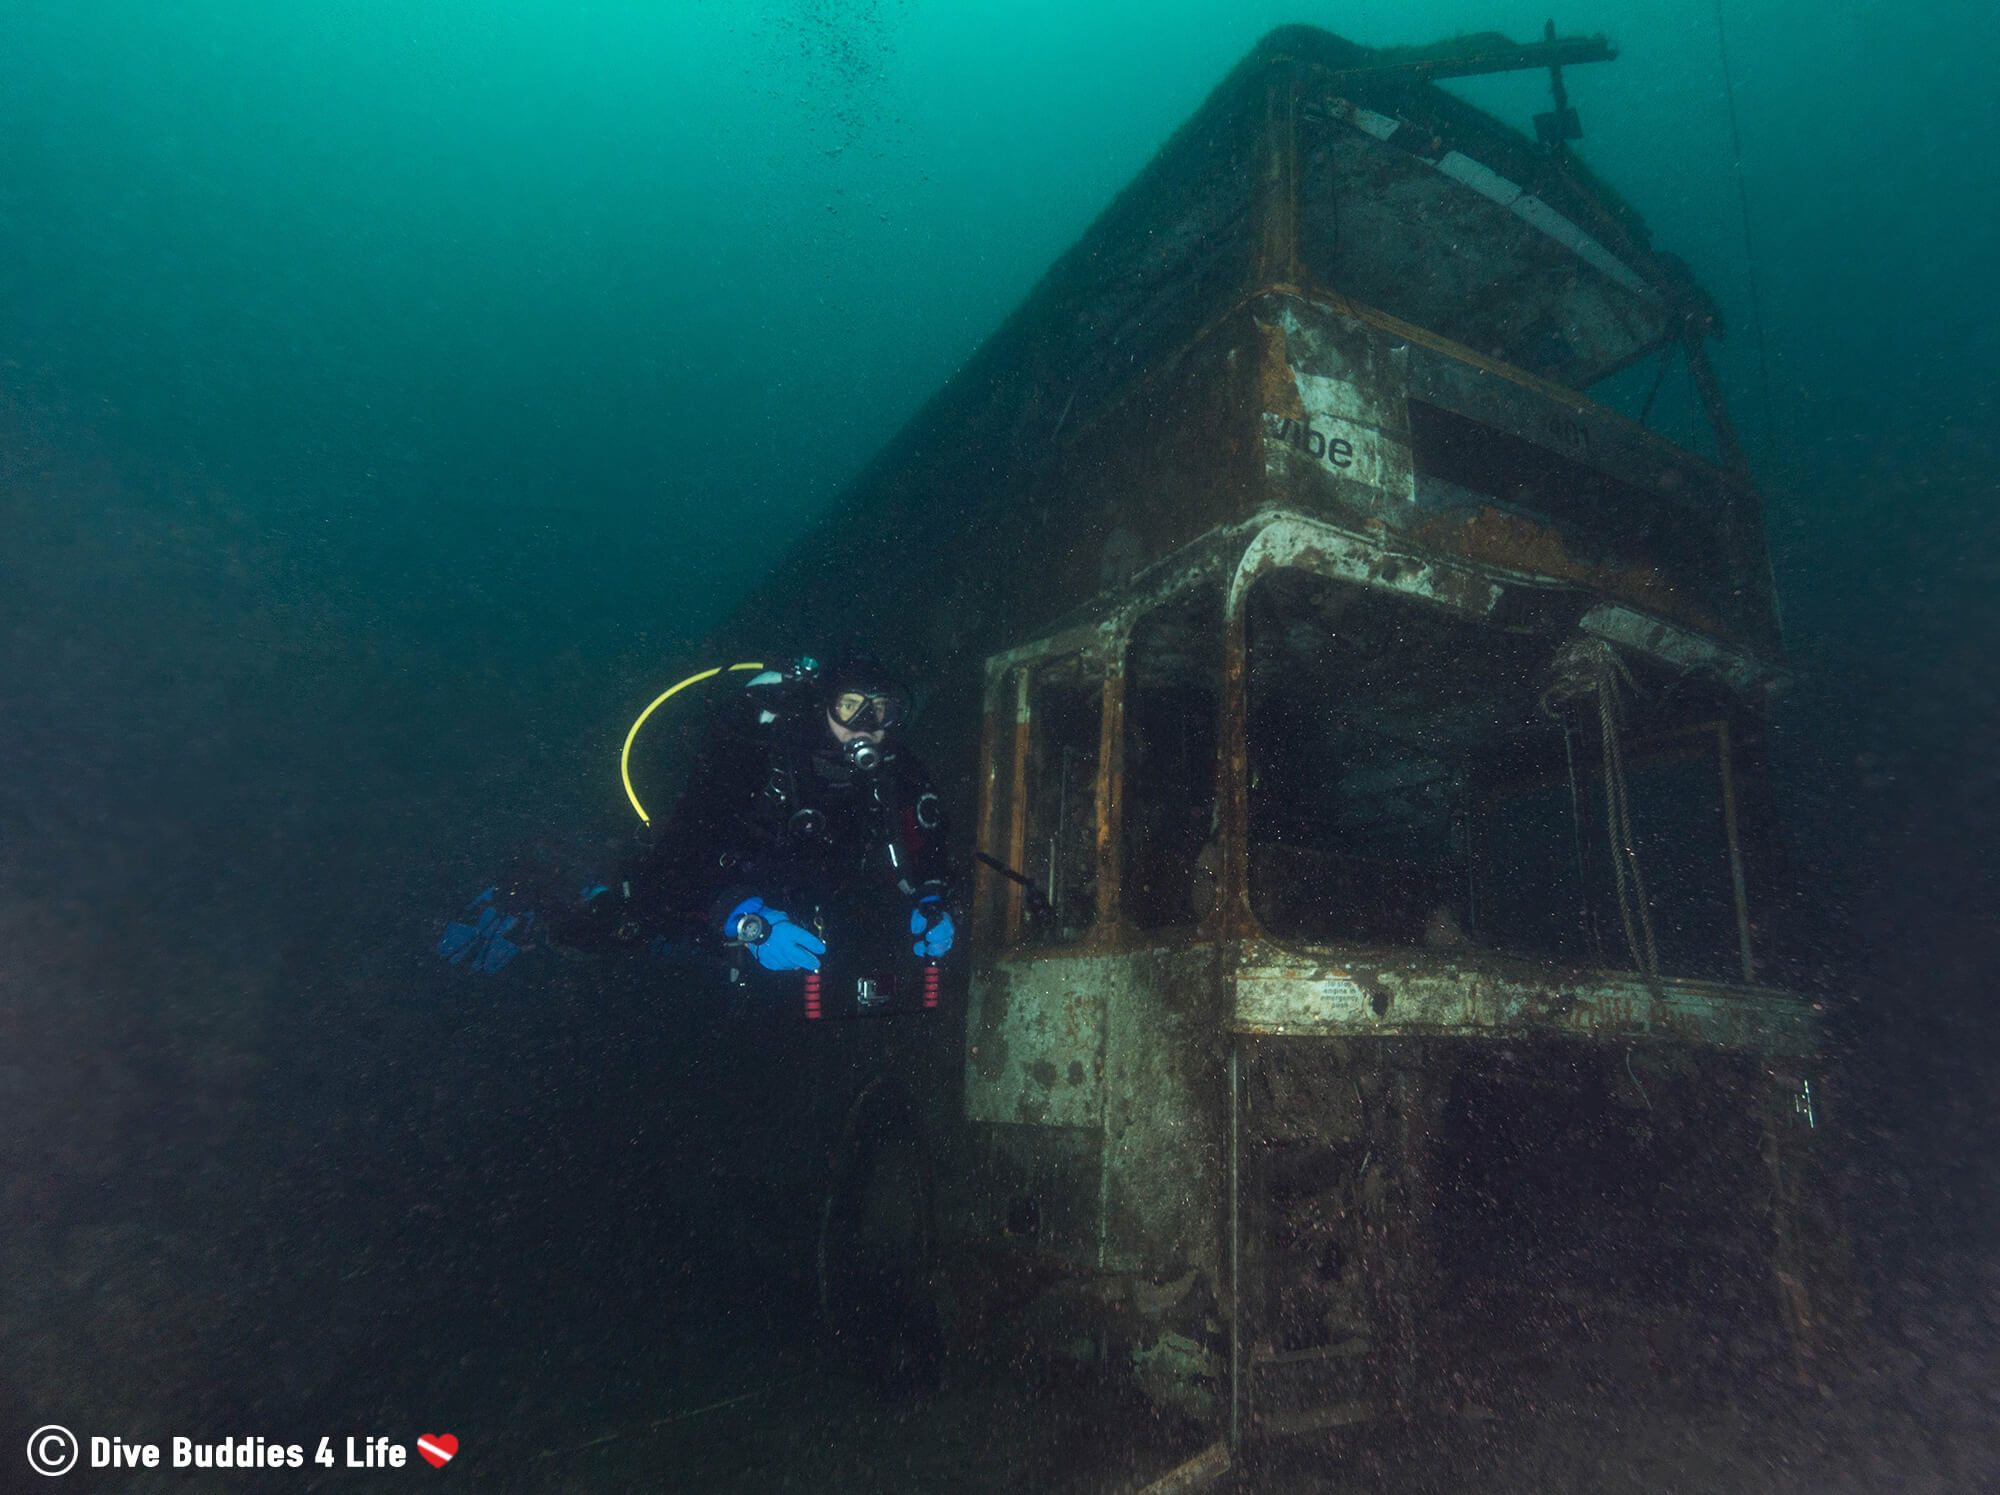 Joey Diving Alongside A Double Decker Bus Sunken Underwater In Chepstow, United Kingdom